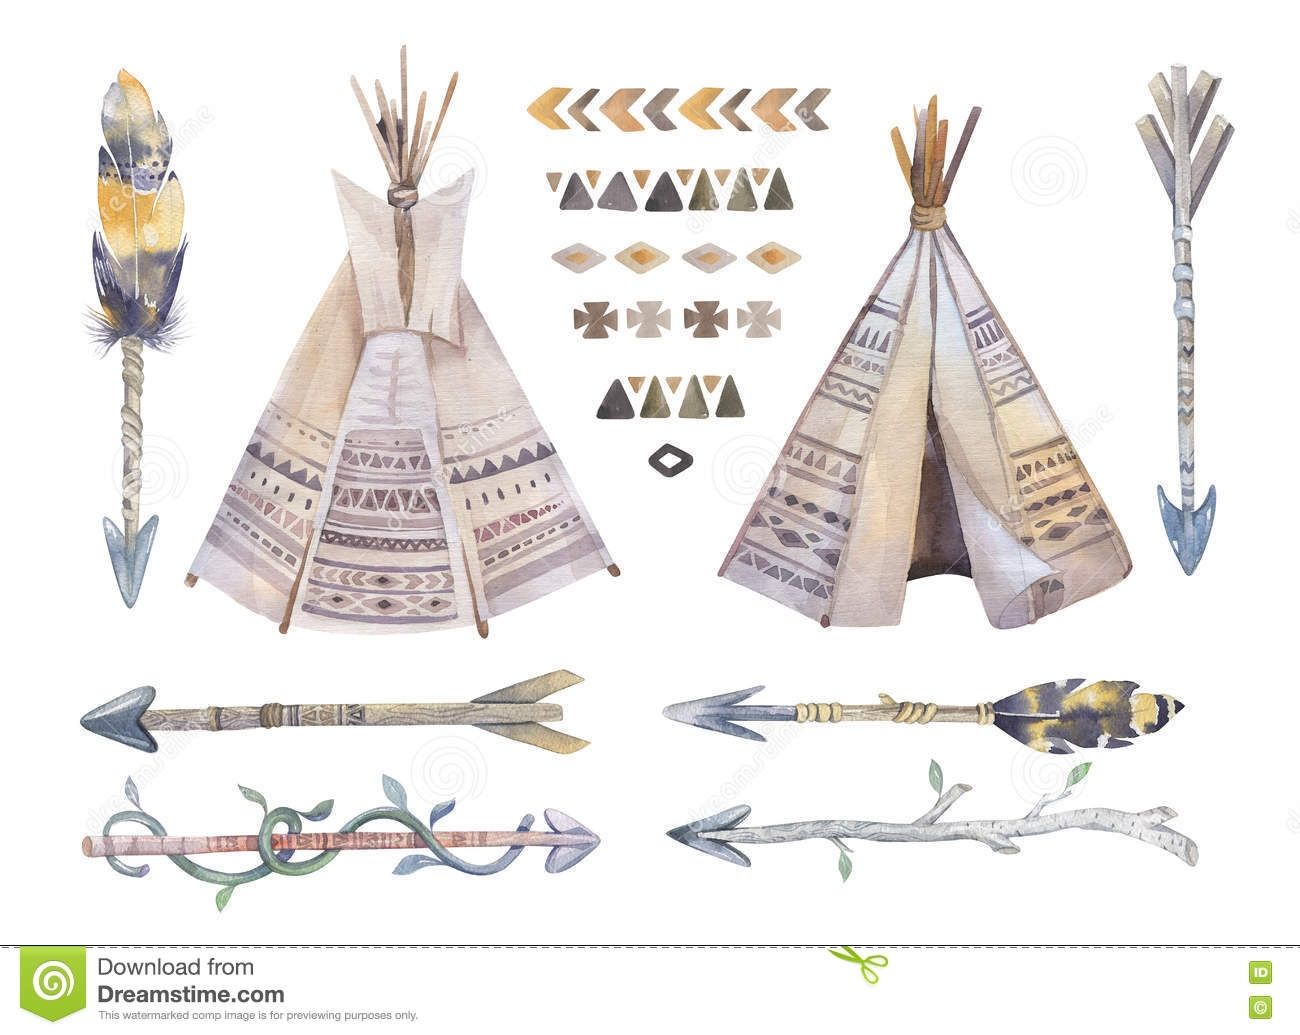 native american coloring pages - stock illustration watercolor teepee arrows fearhers tomahawk boho america indians tribal style travel tent decoration tipi isolated illustration image